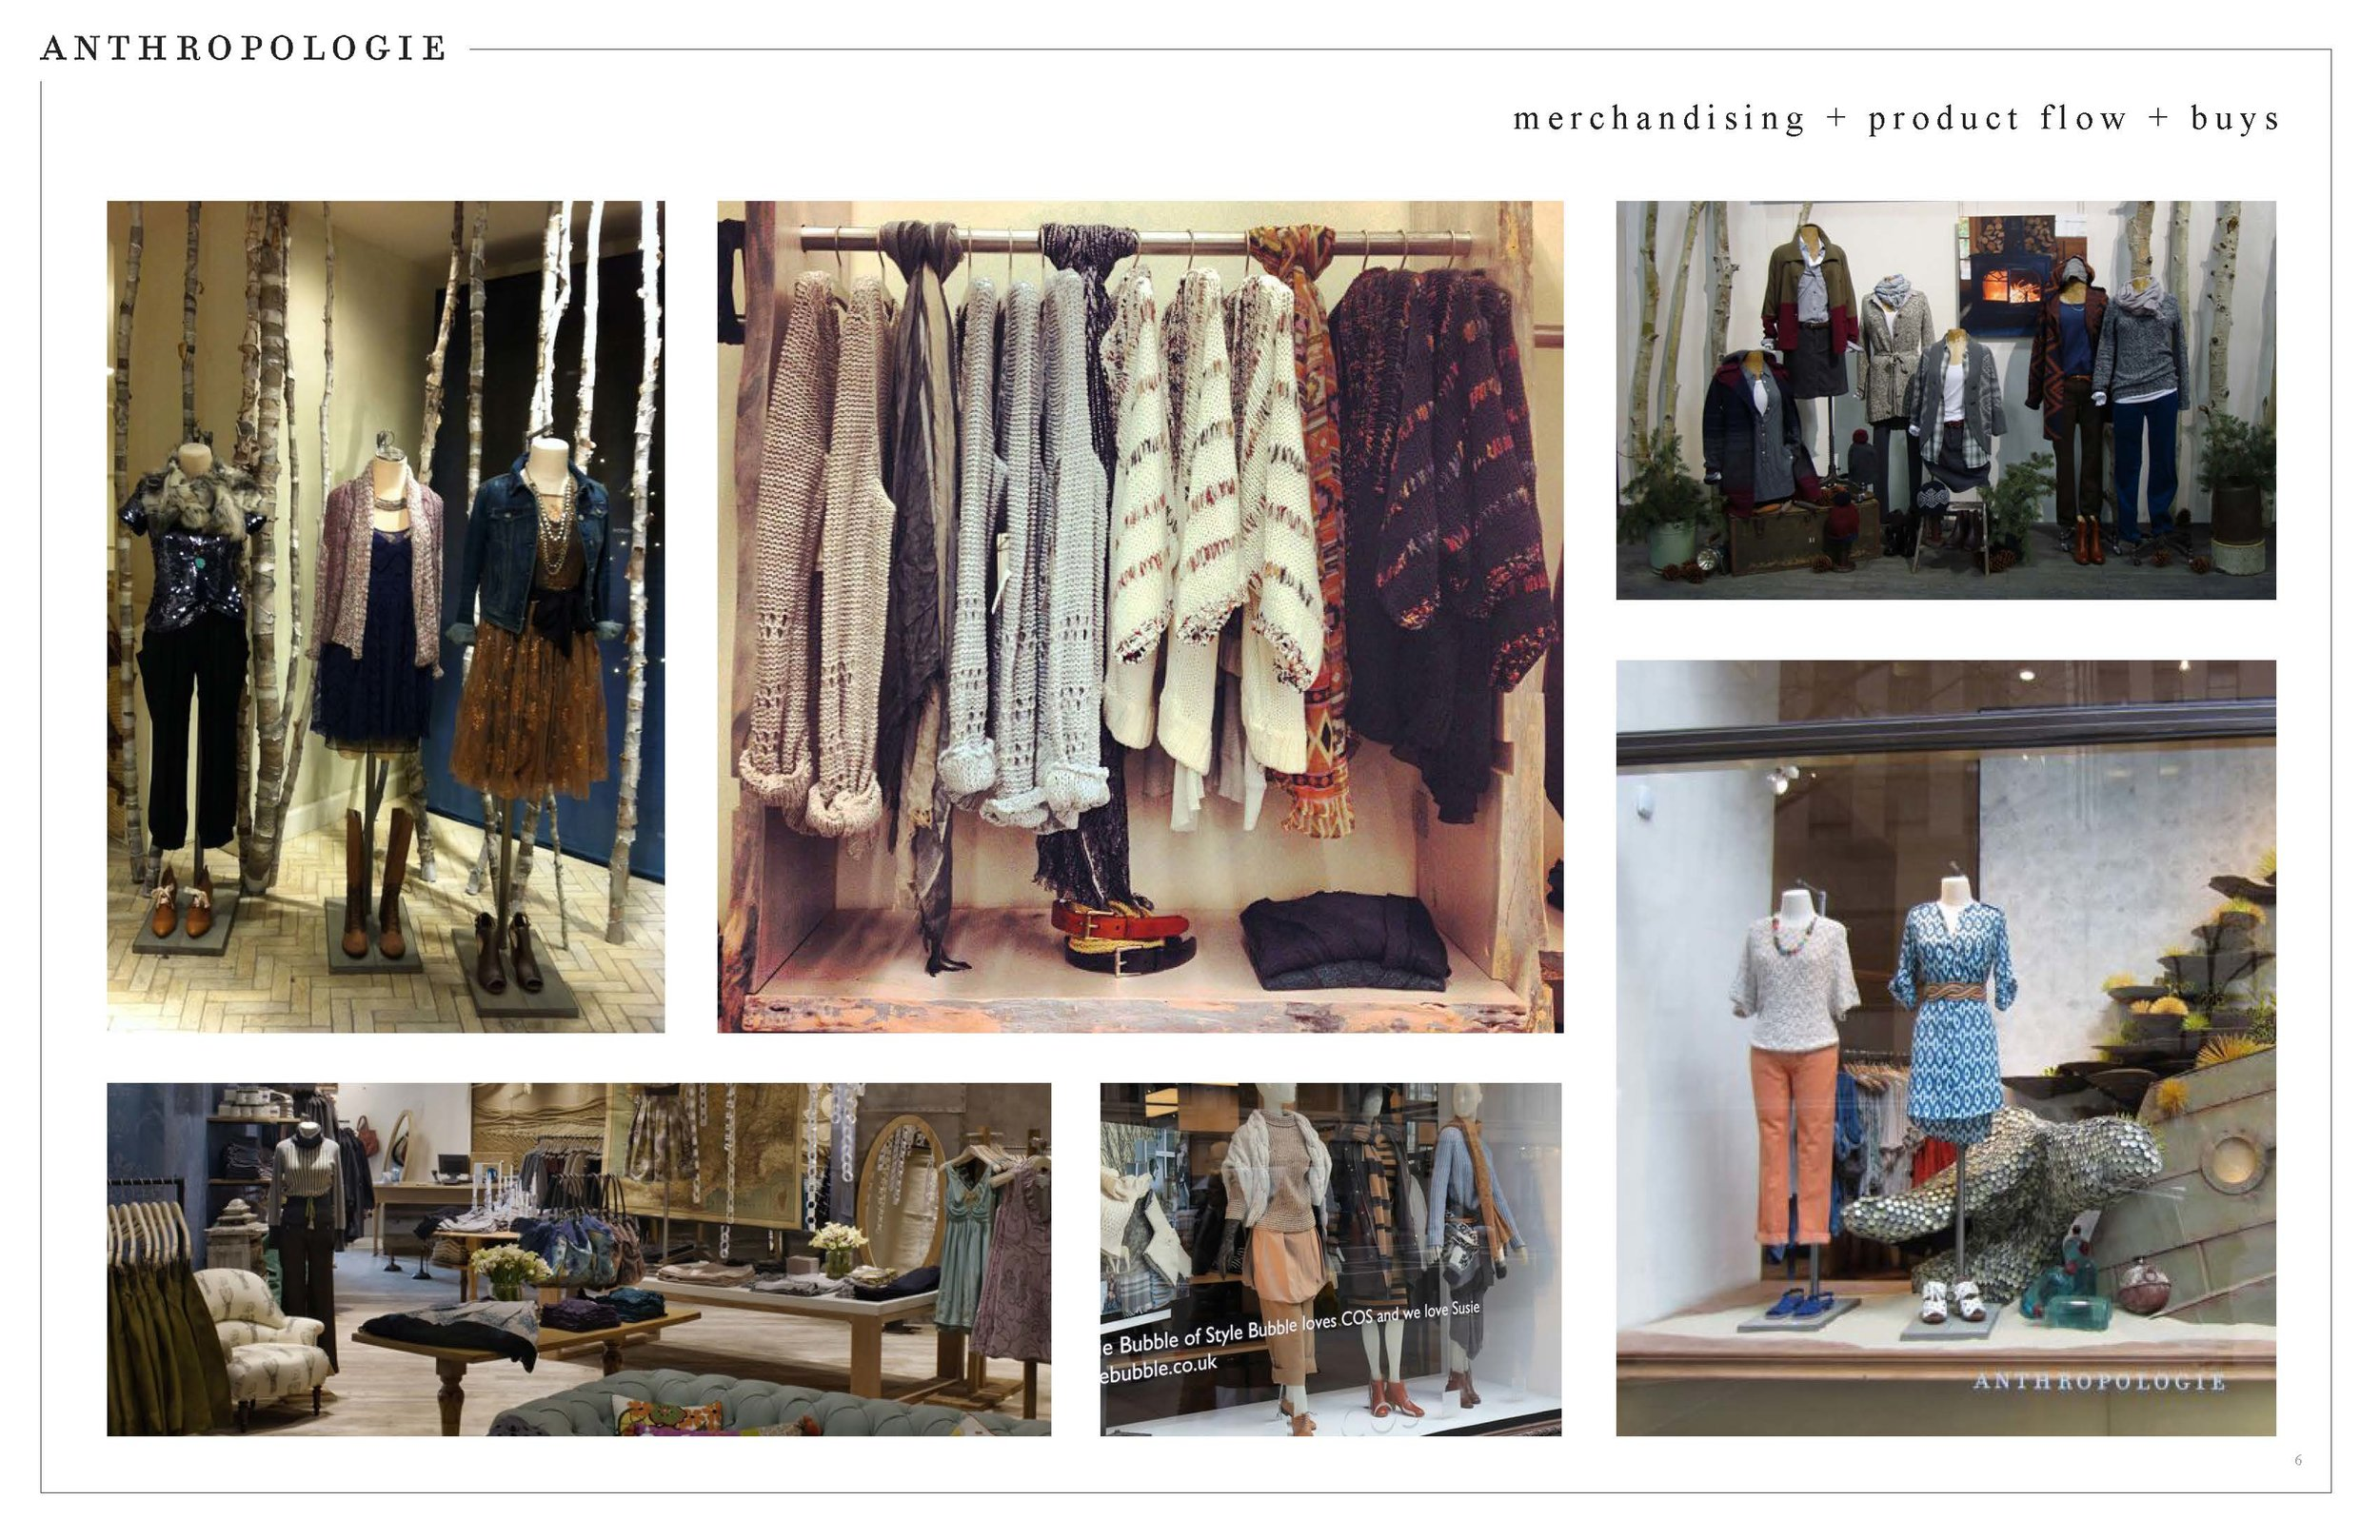 Anthropologie_Art_Direction_Process_01_Page_07.jpg